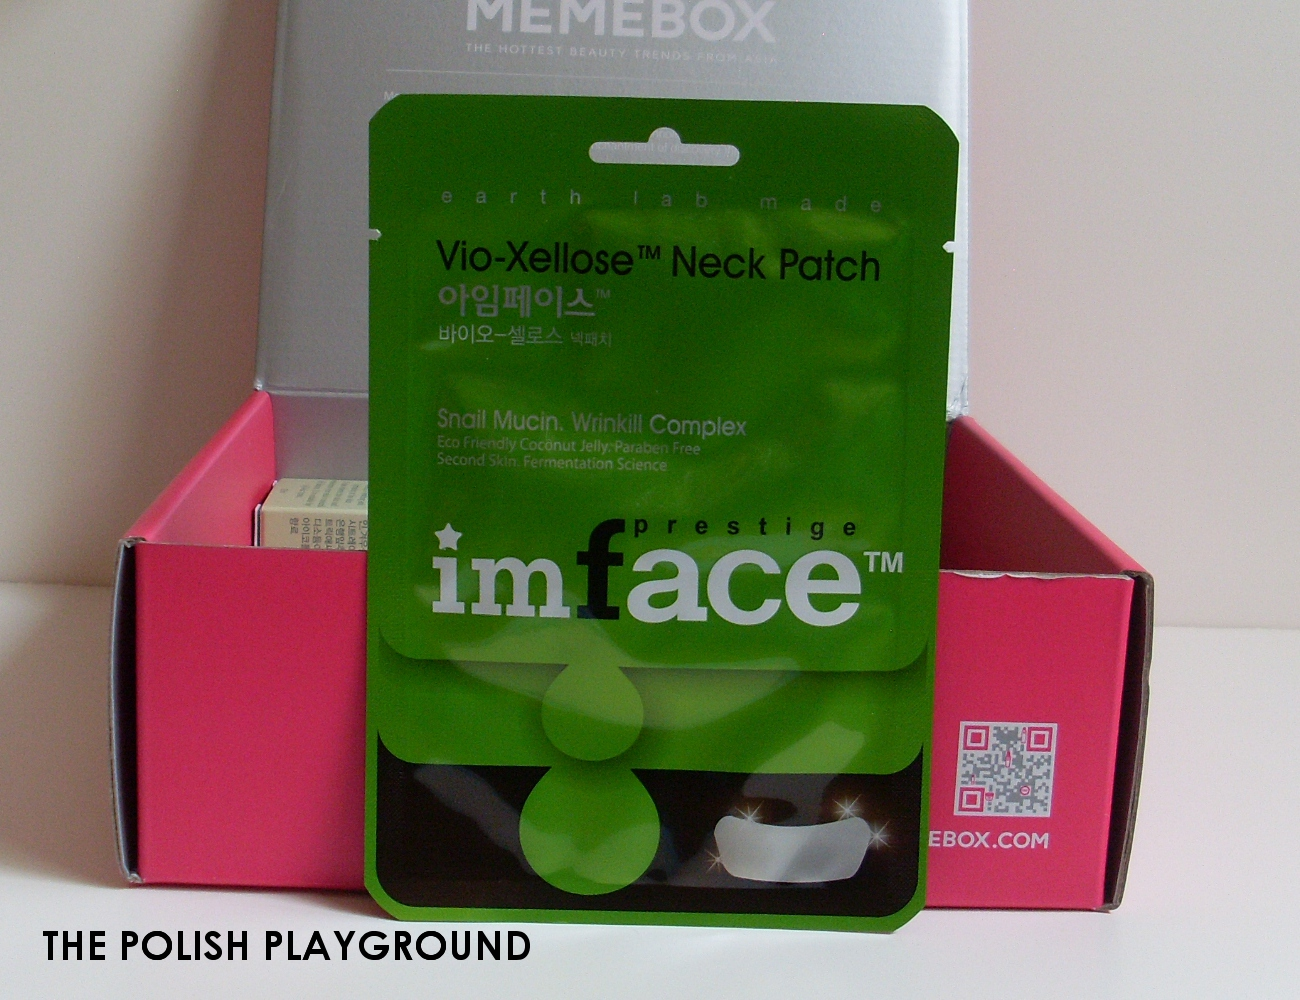 Memebox Special #35 Moisture Surge Unboxing - imface Vio-Xellose Neck Patch